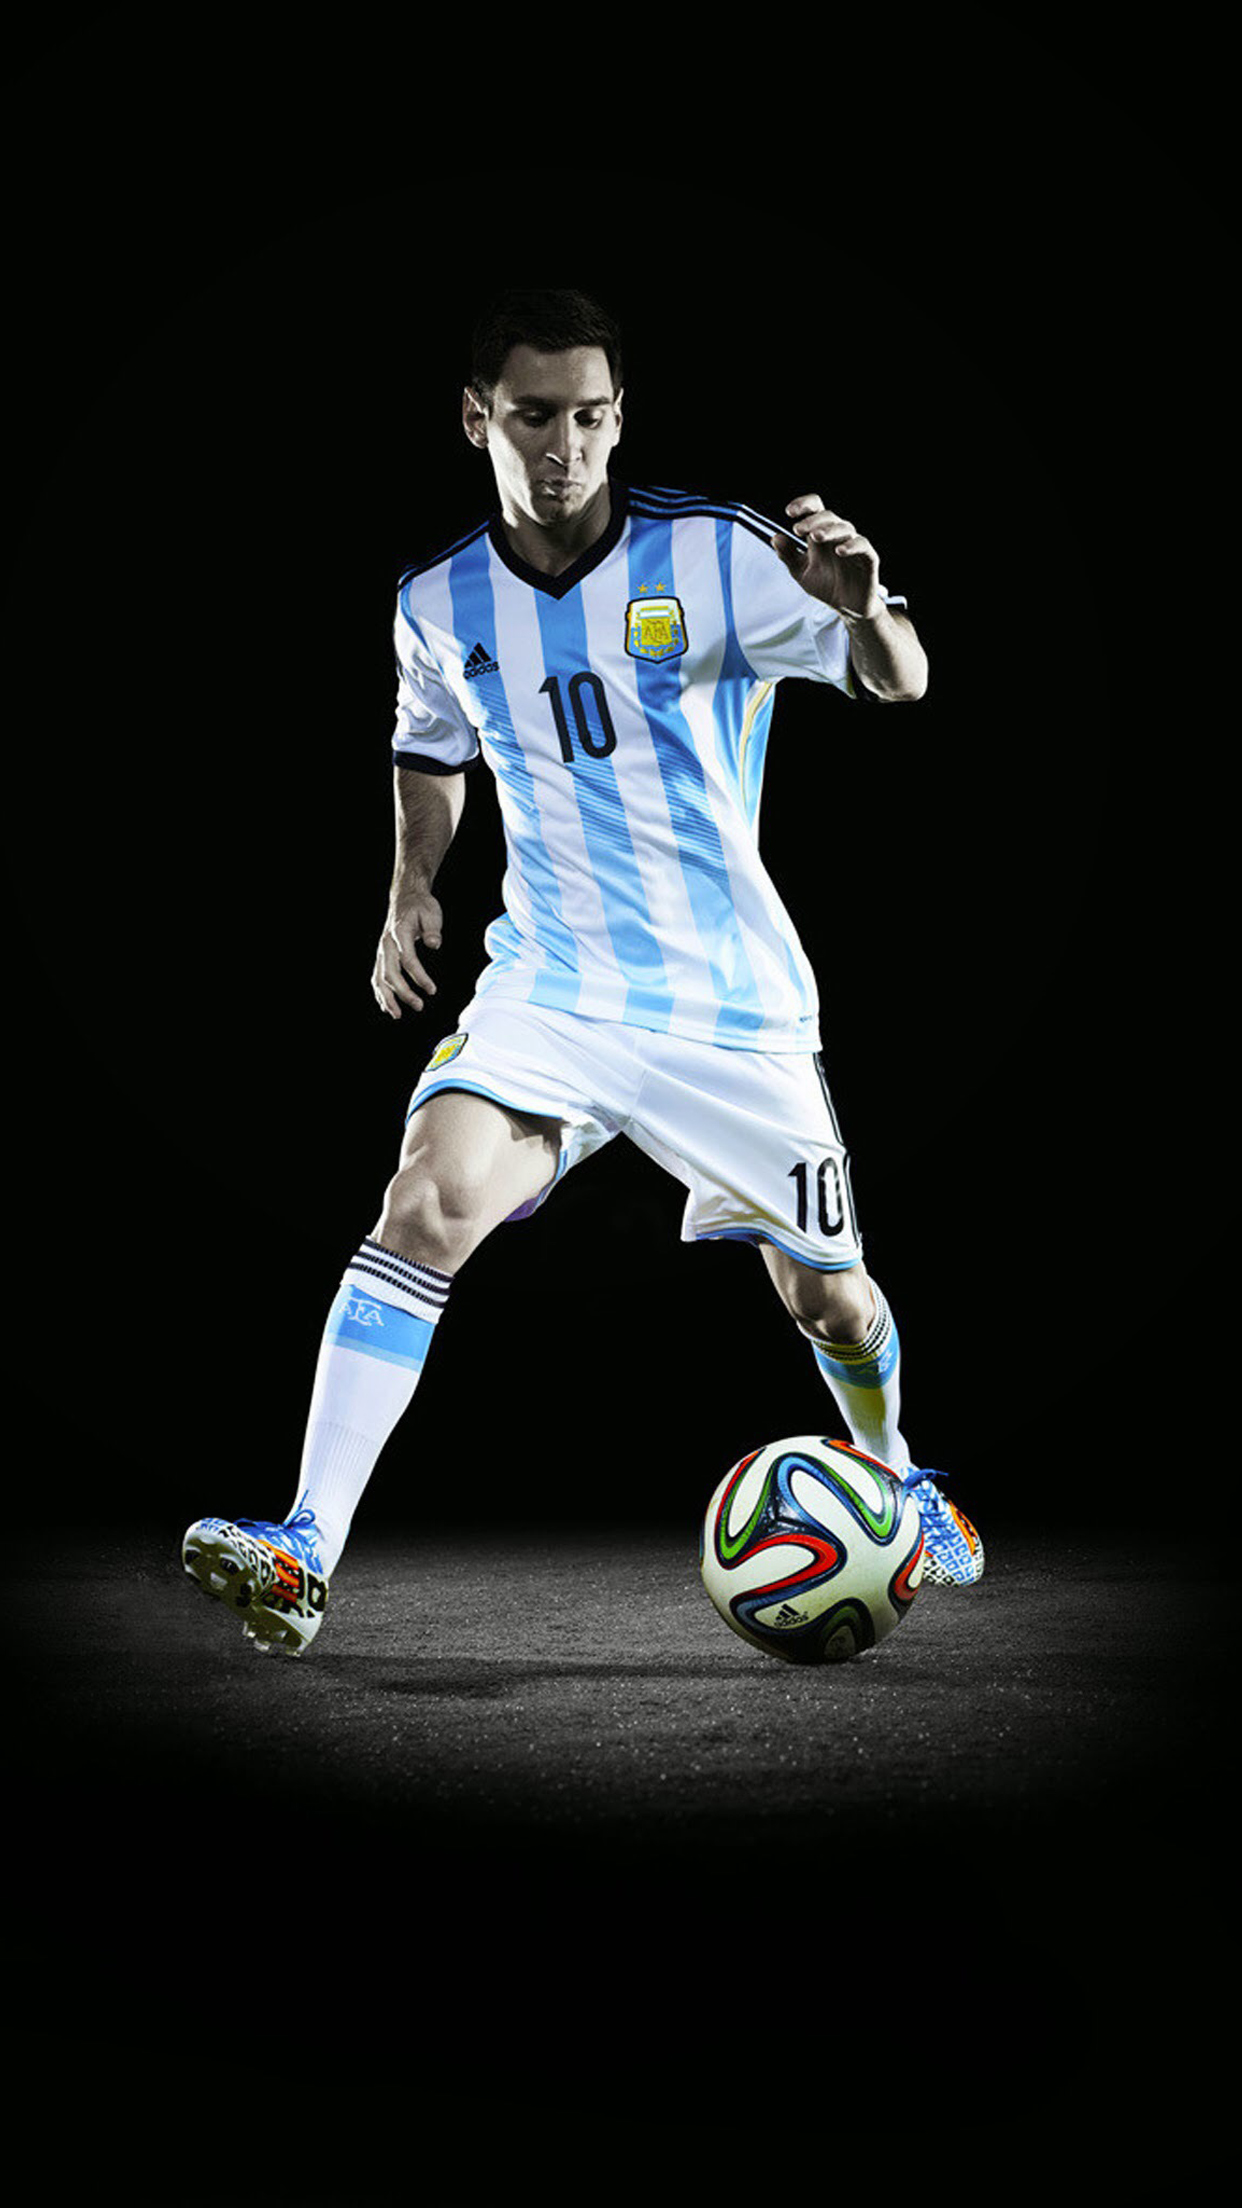 Wallpaper HD iPhone Lionel Messi - Free Download